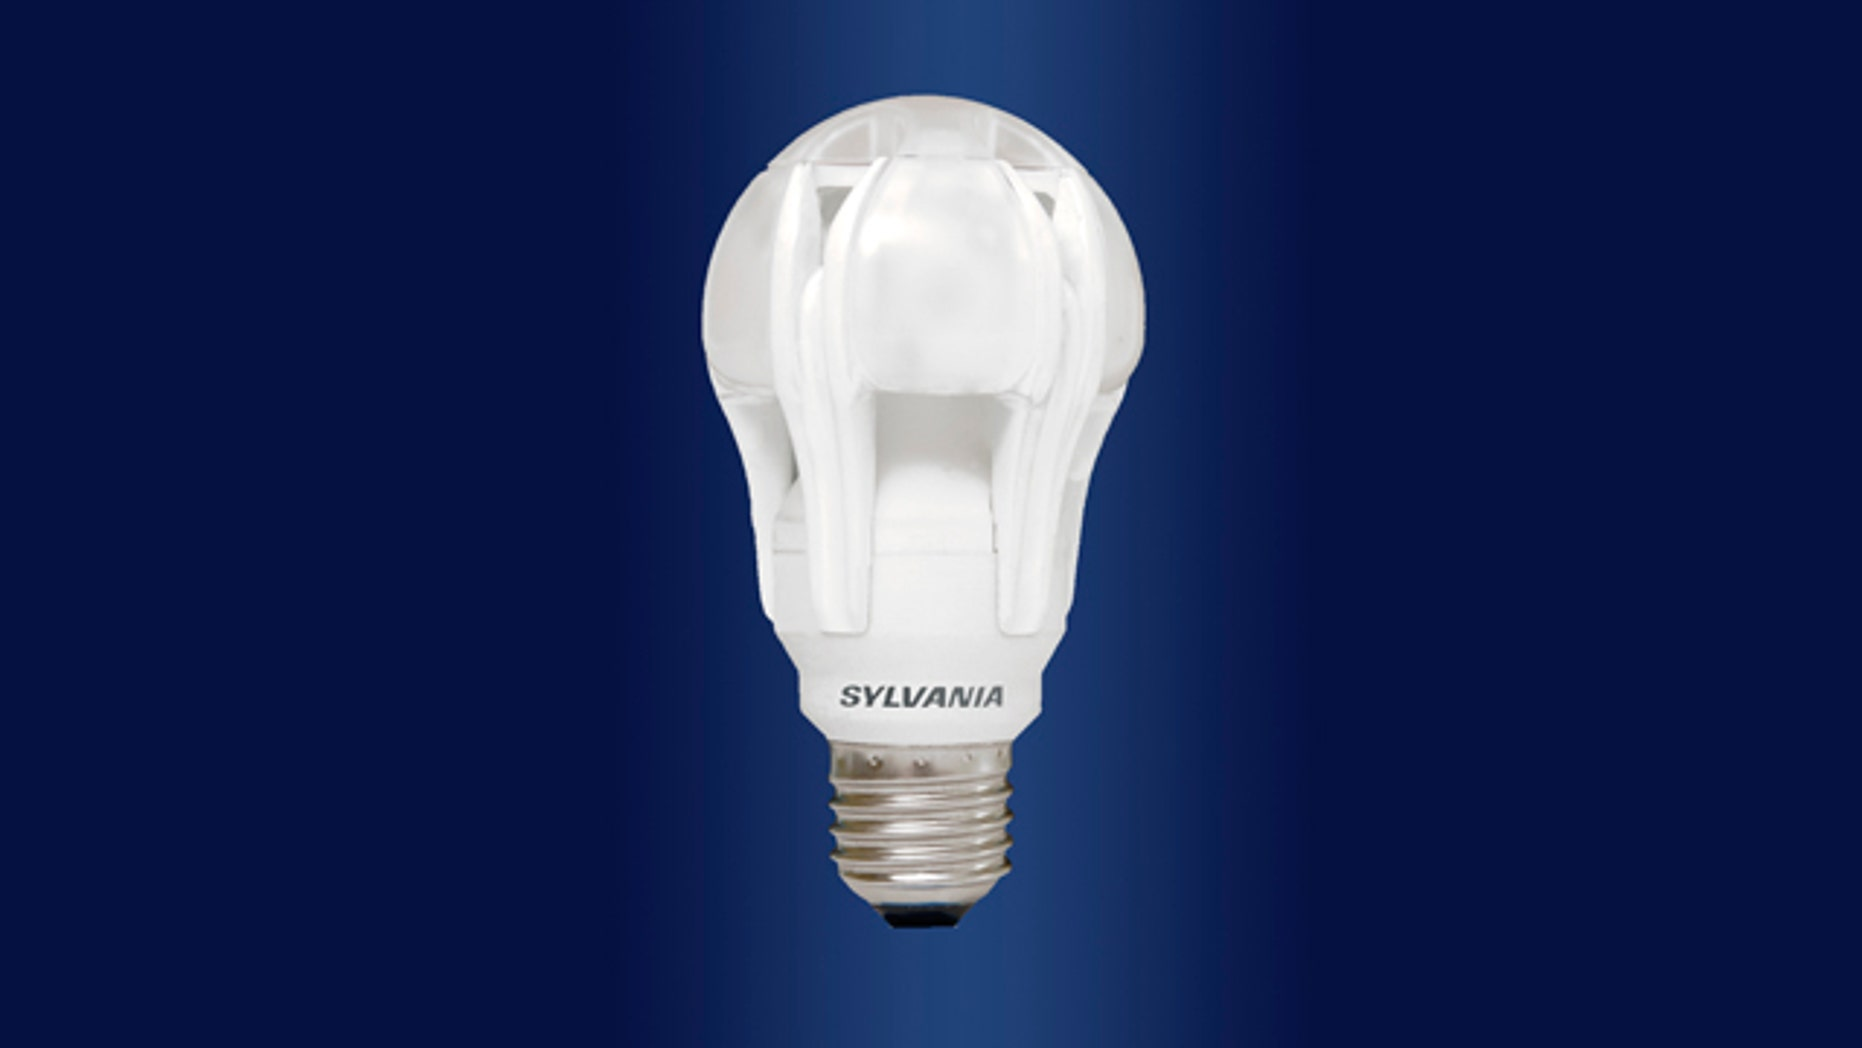 The new incandescent lamp of the Massachusetts Institute of Technology is three times more efficient than the LED 57